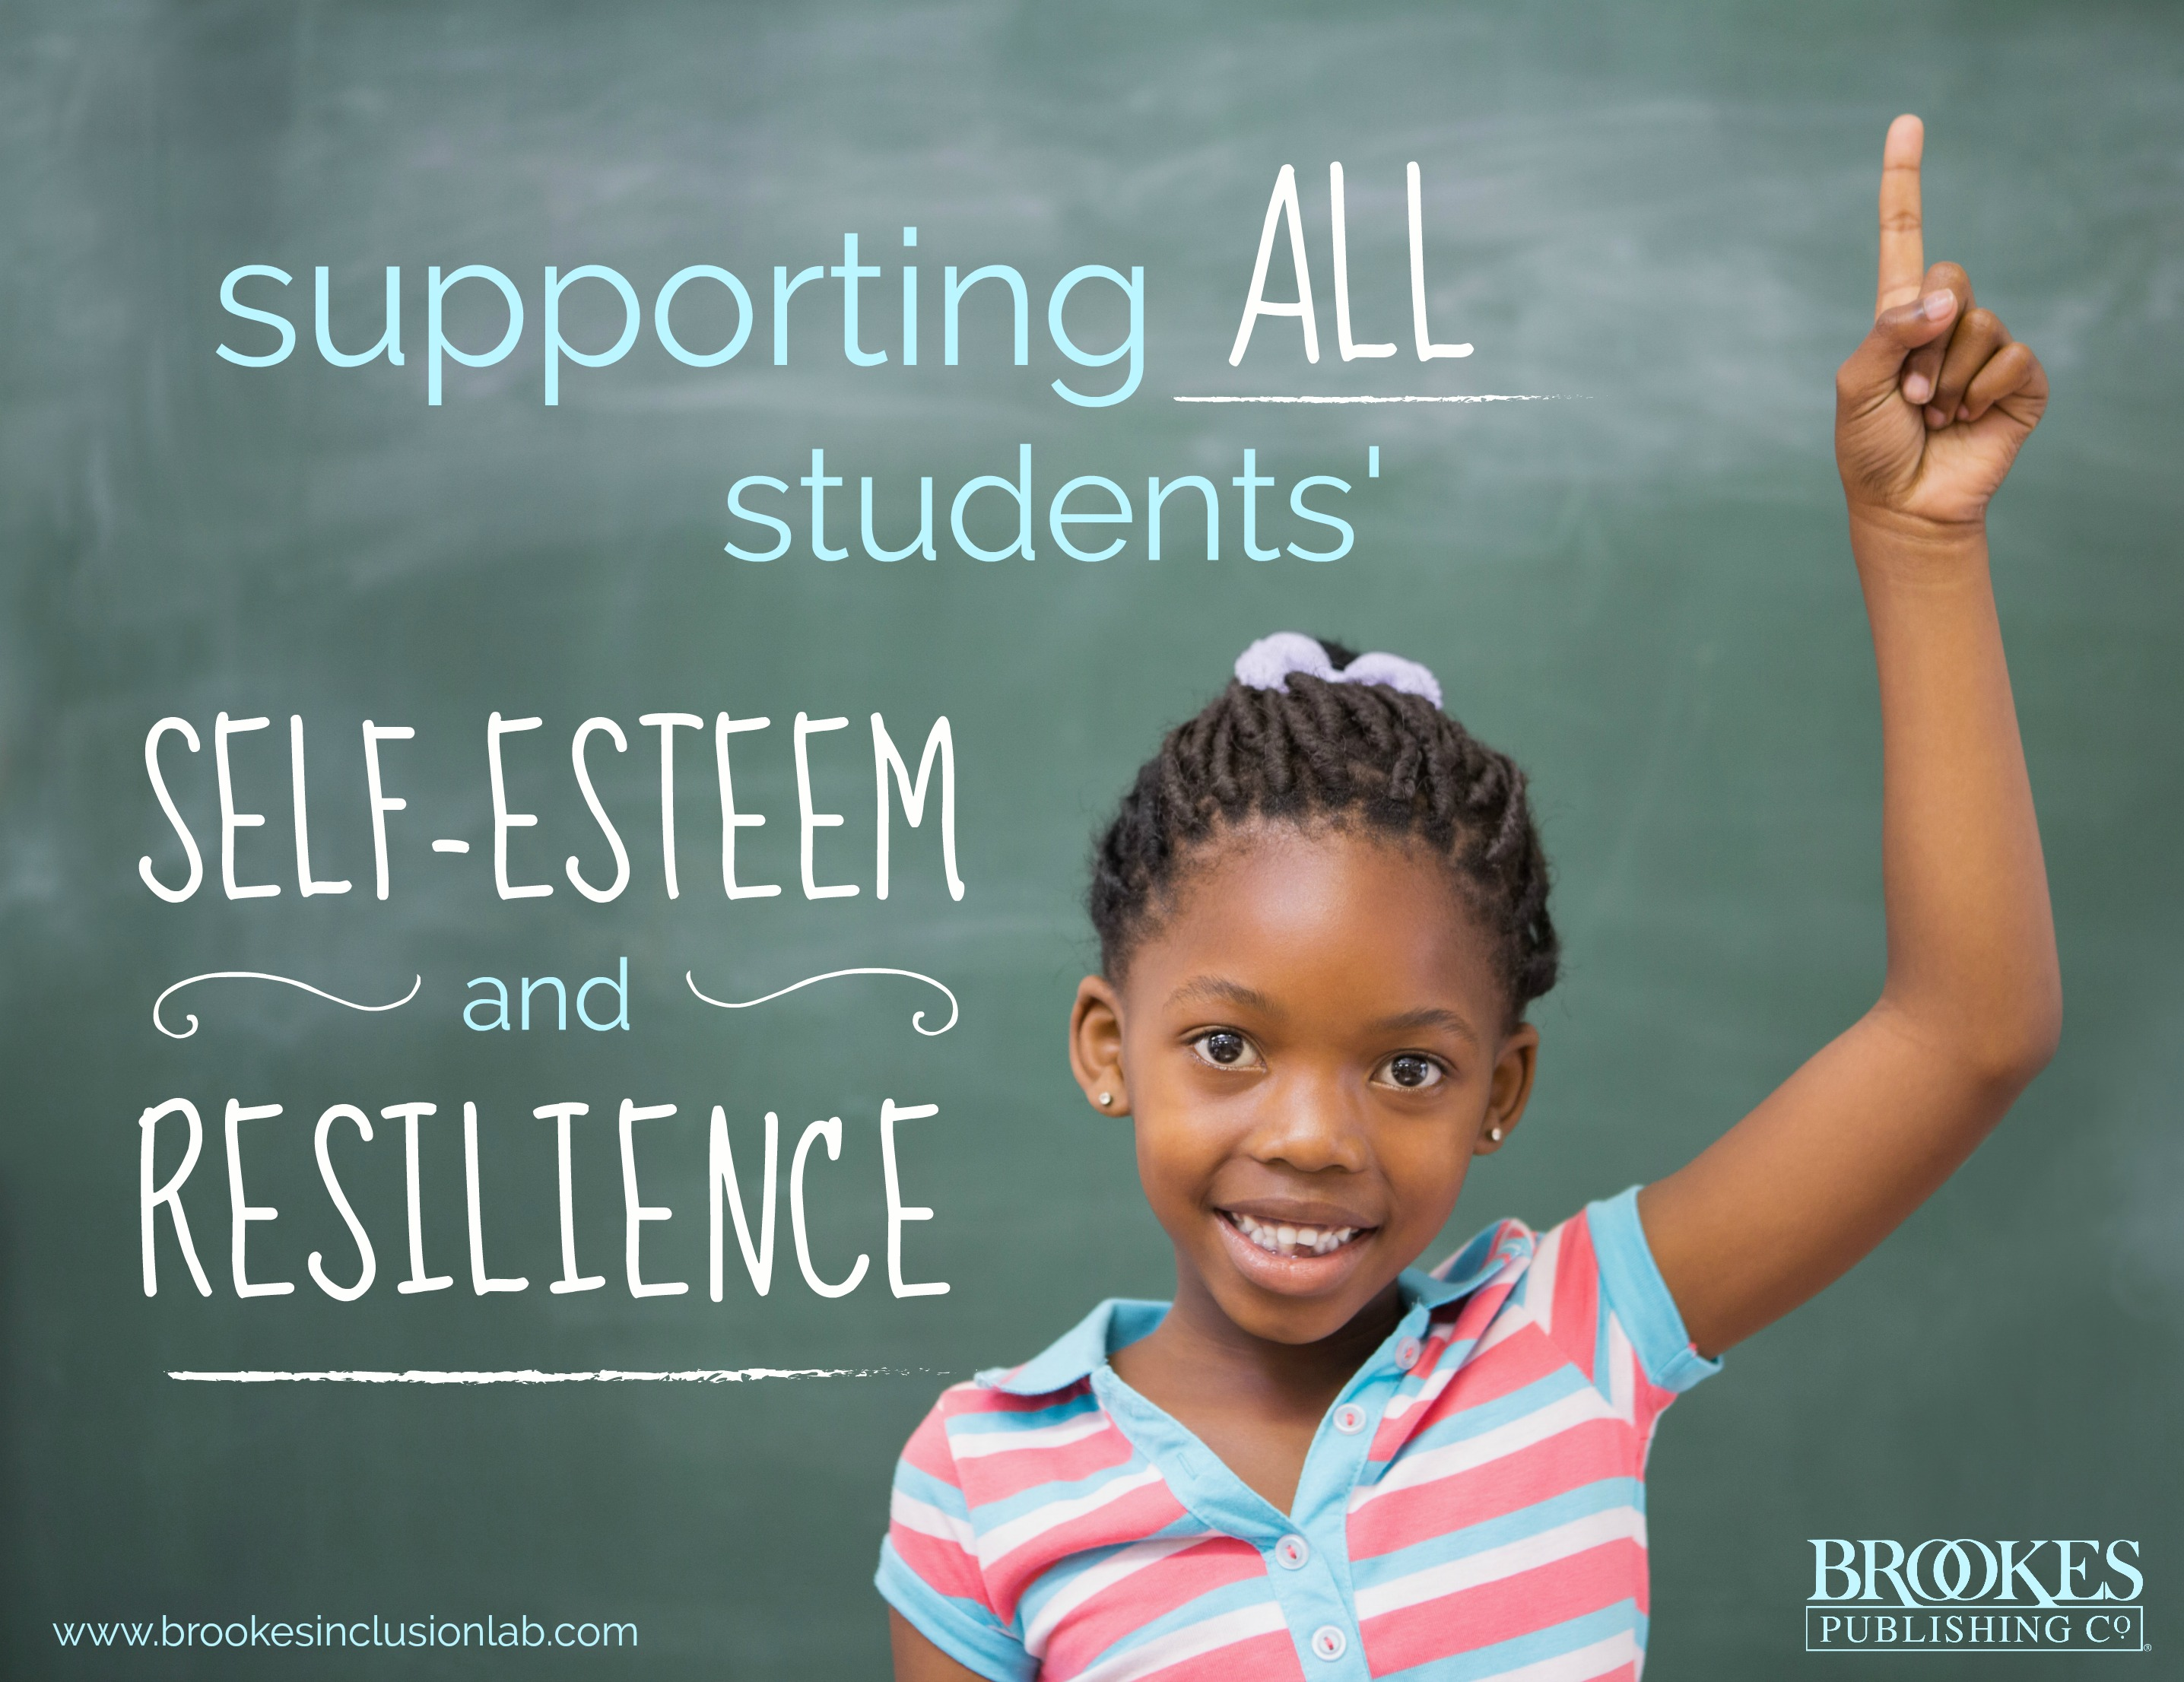 7 Ways to Foster Self-Esteem and Resilience in All Learners